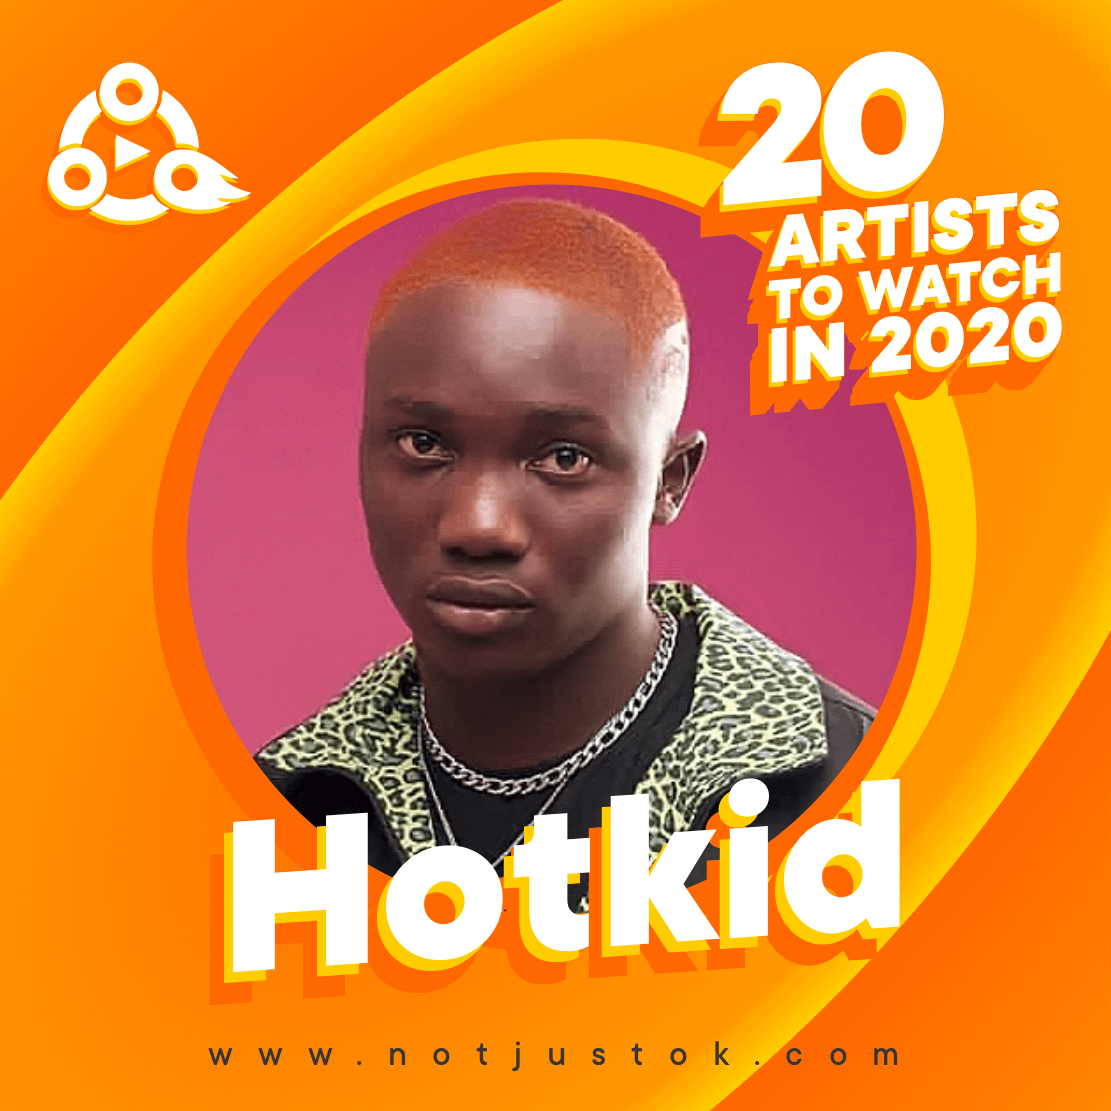 The 20 Artists To Watch In 2020 - - Hotkid